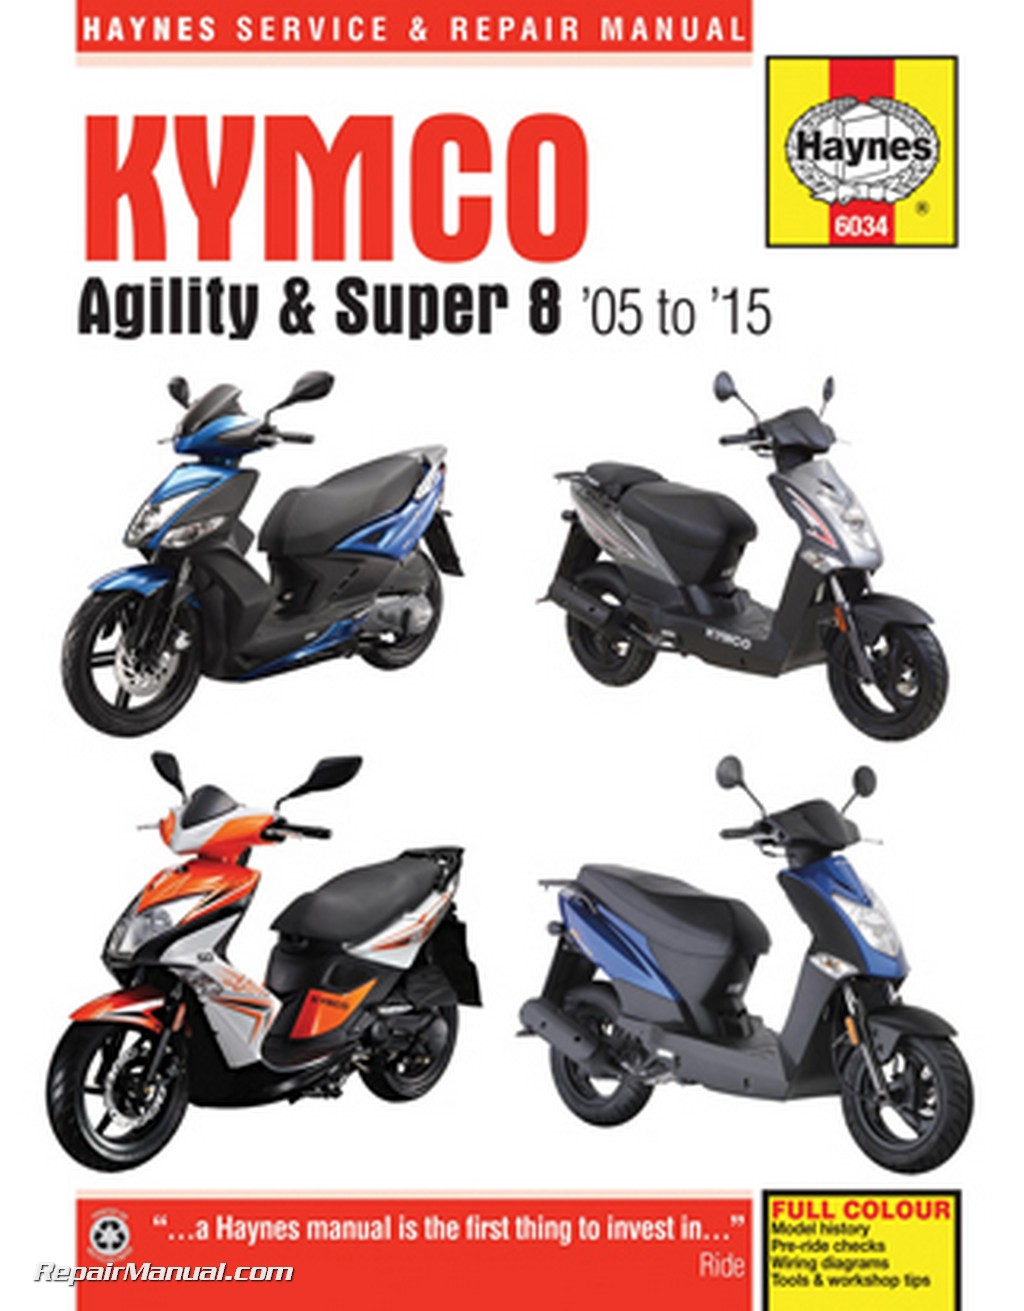 kymco 2005 2015 agility super 8 haynes scooter repair manual. Black Bedroom Furniture Sets. Home Design Ideas